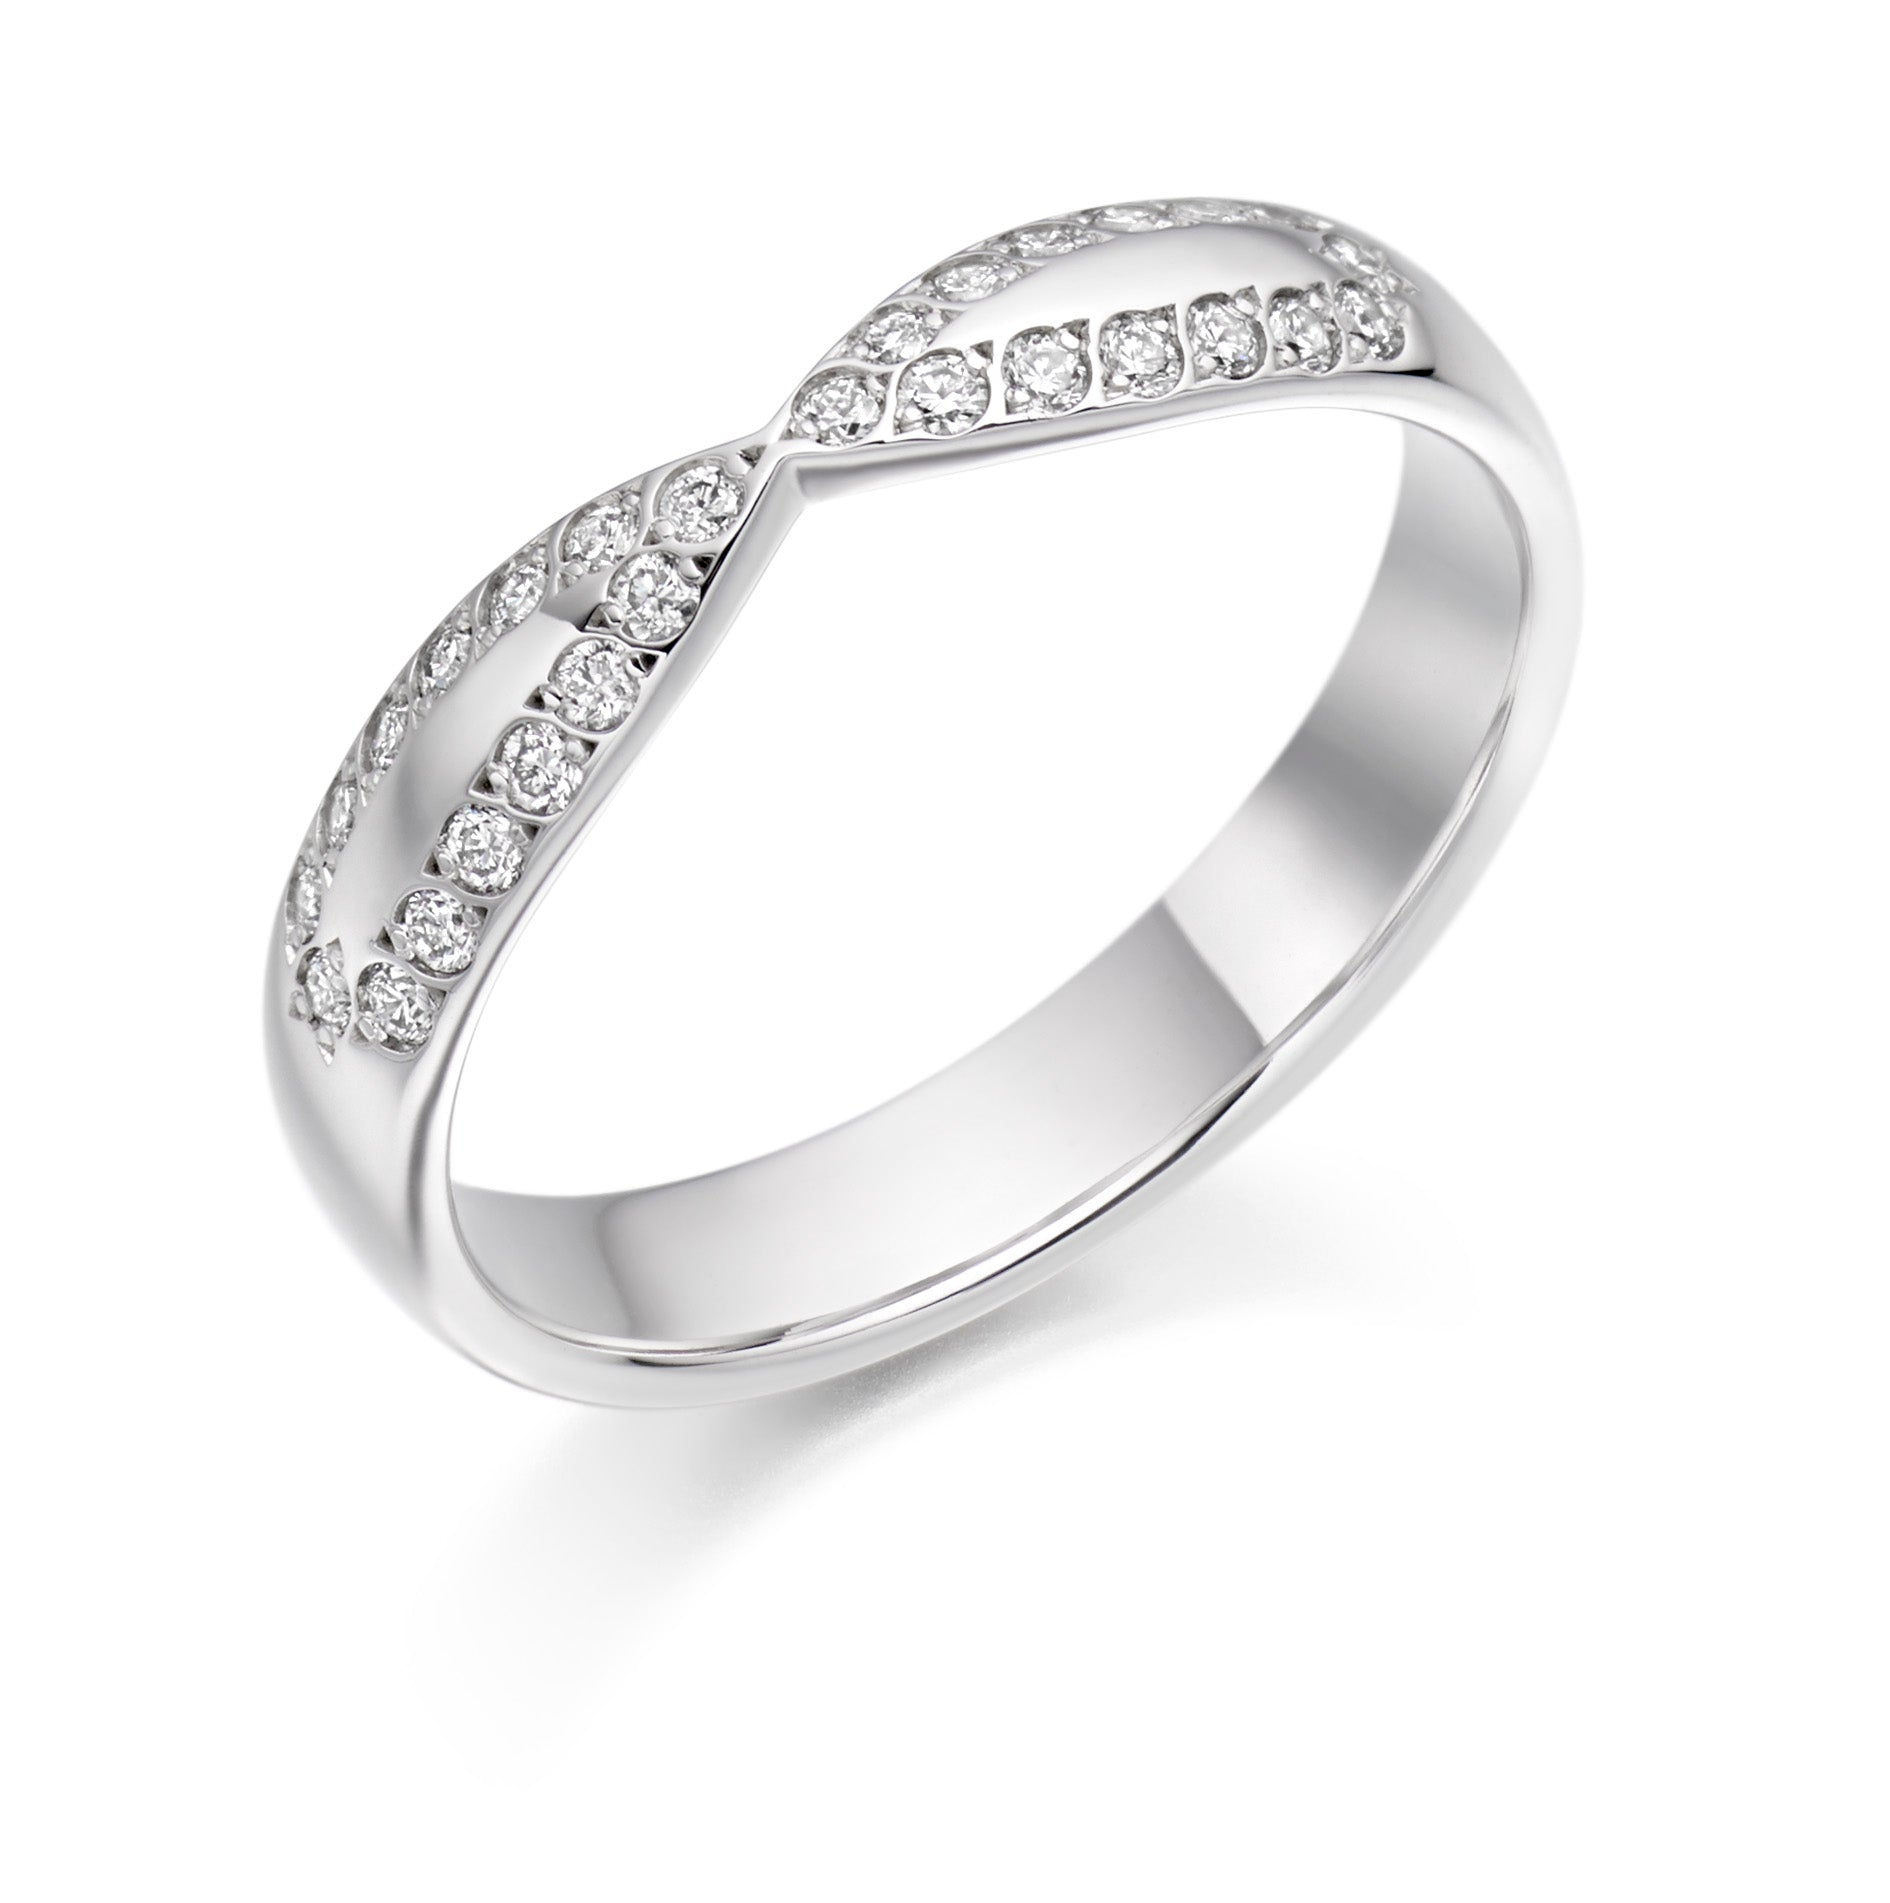 0.25ct Round Brilliant Cut Diamonds Curved and Shaped- Wedding Ring - (Home Try-On)